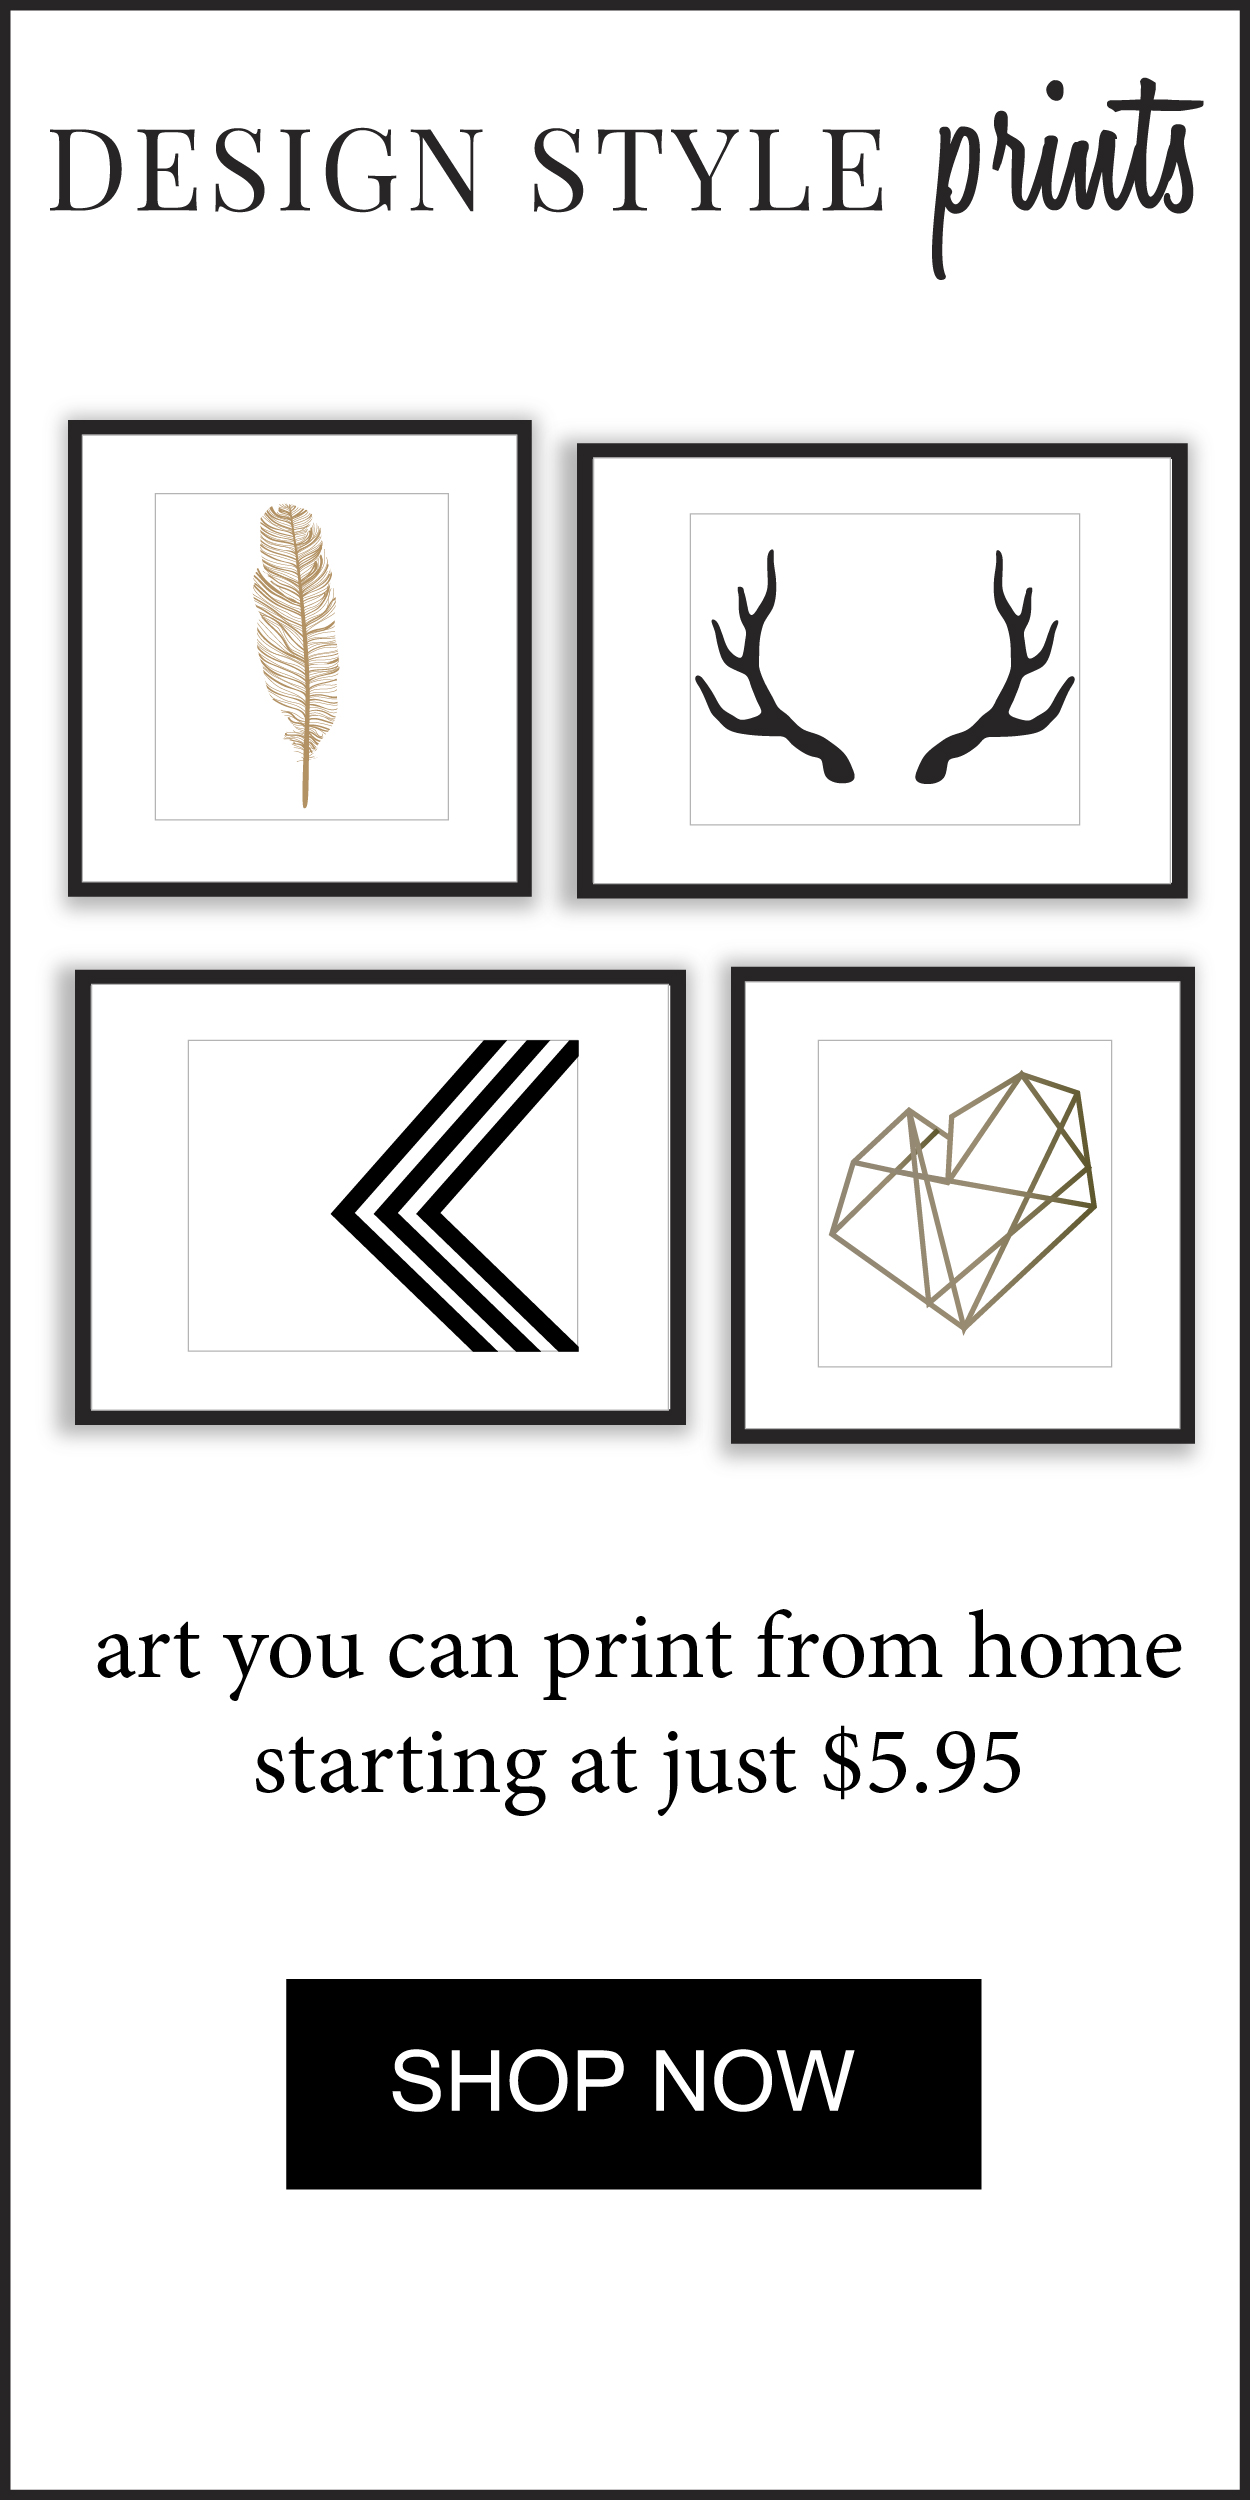 Design Style Prints, art you can print from home starting at just $5.95